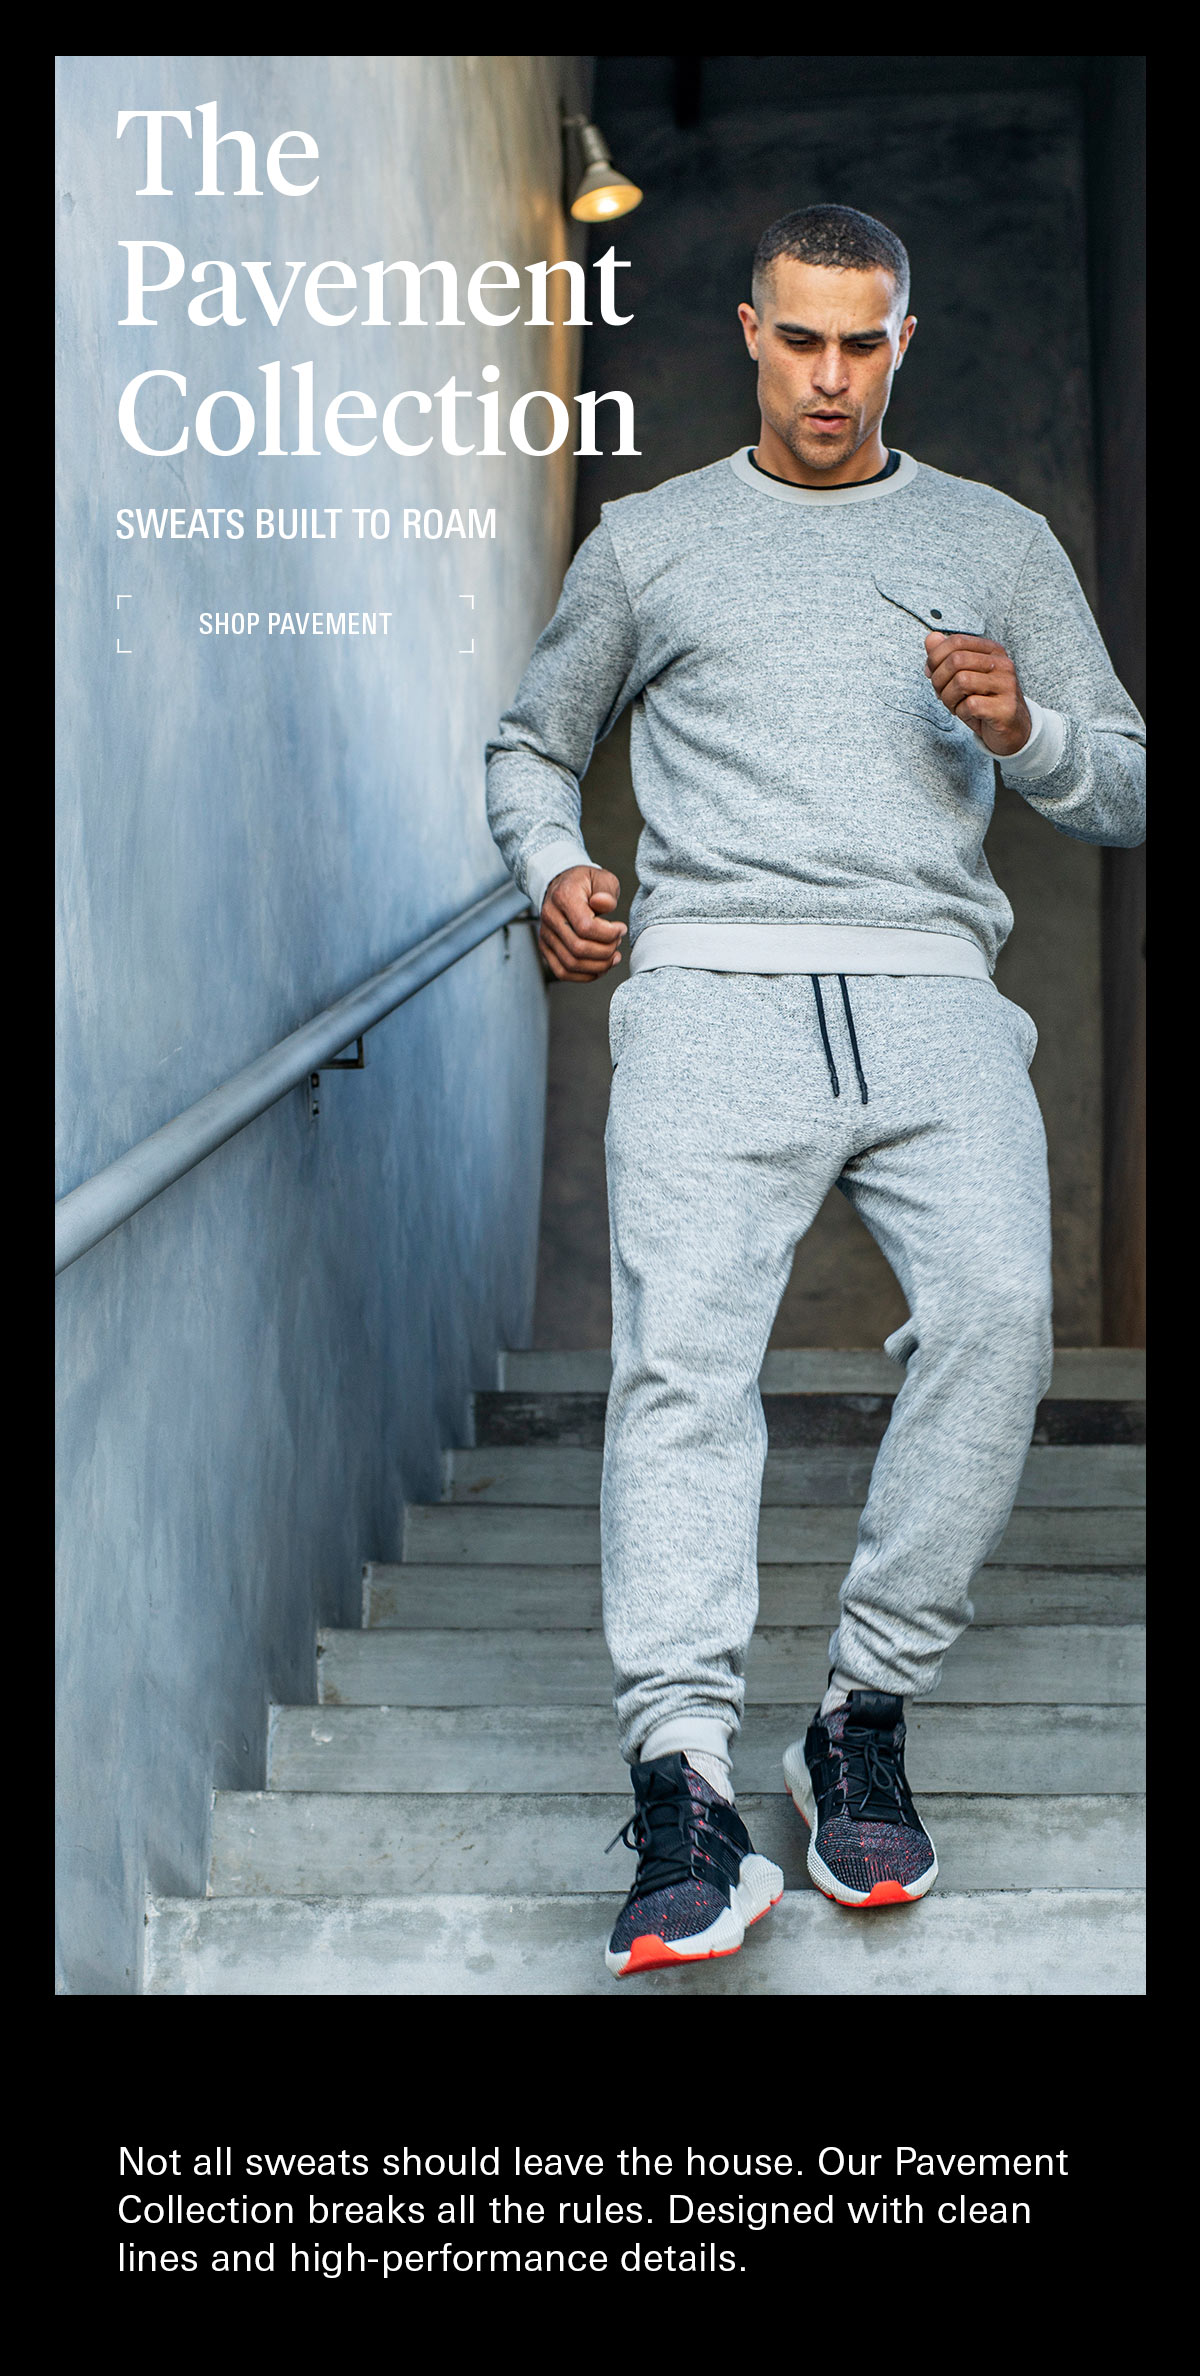 Introducing the Pavement Sweats